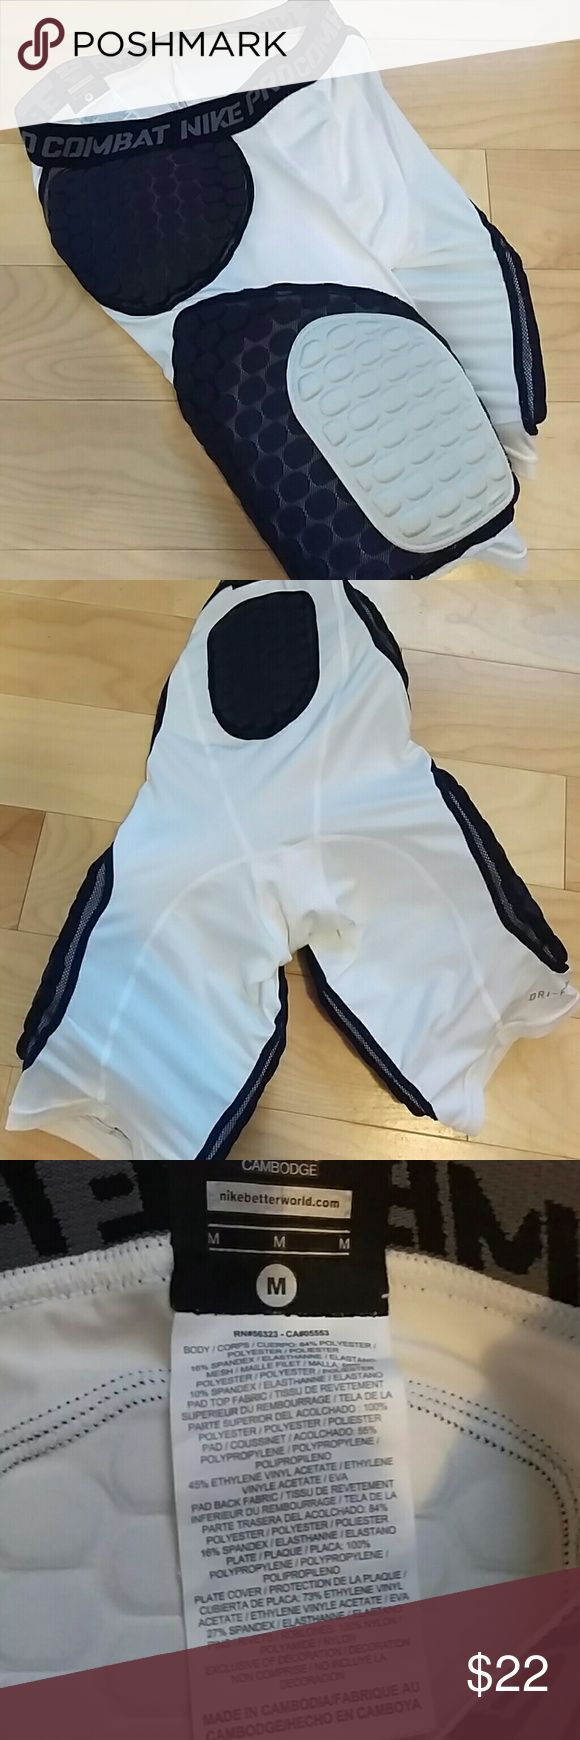 Nike Pro Combat Football Padded Shorts - Football padded compression shorts.  - High quality no damage. - Recommended for highschool football. - Fast and reliable shipper.  - Feel free to ask questions, make an offer, or request a specific photo. Nike Shorts Athletic